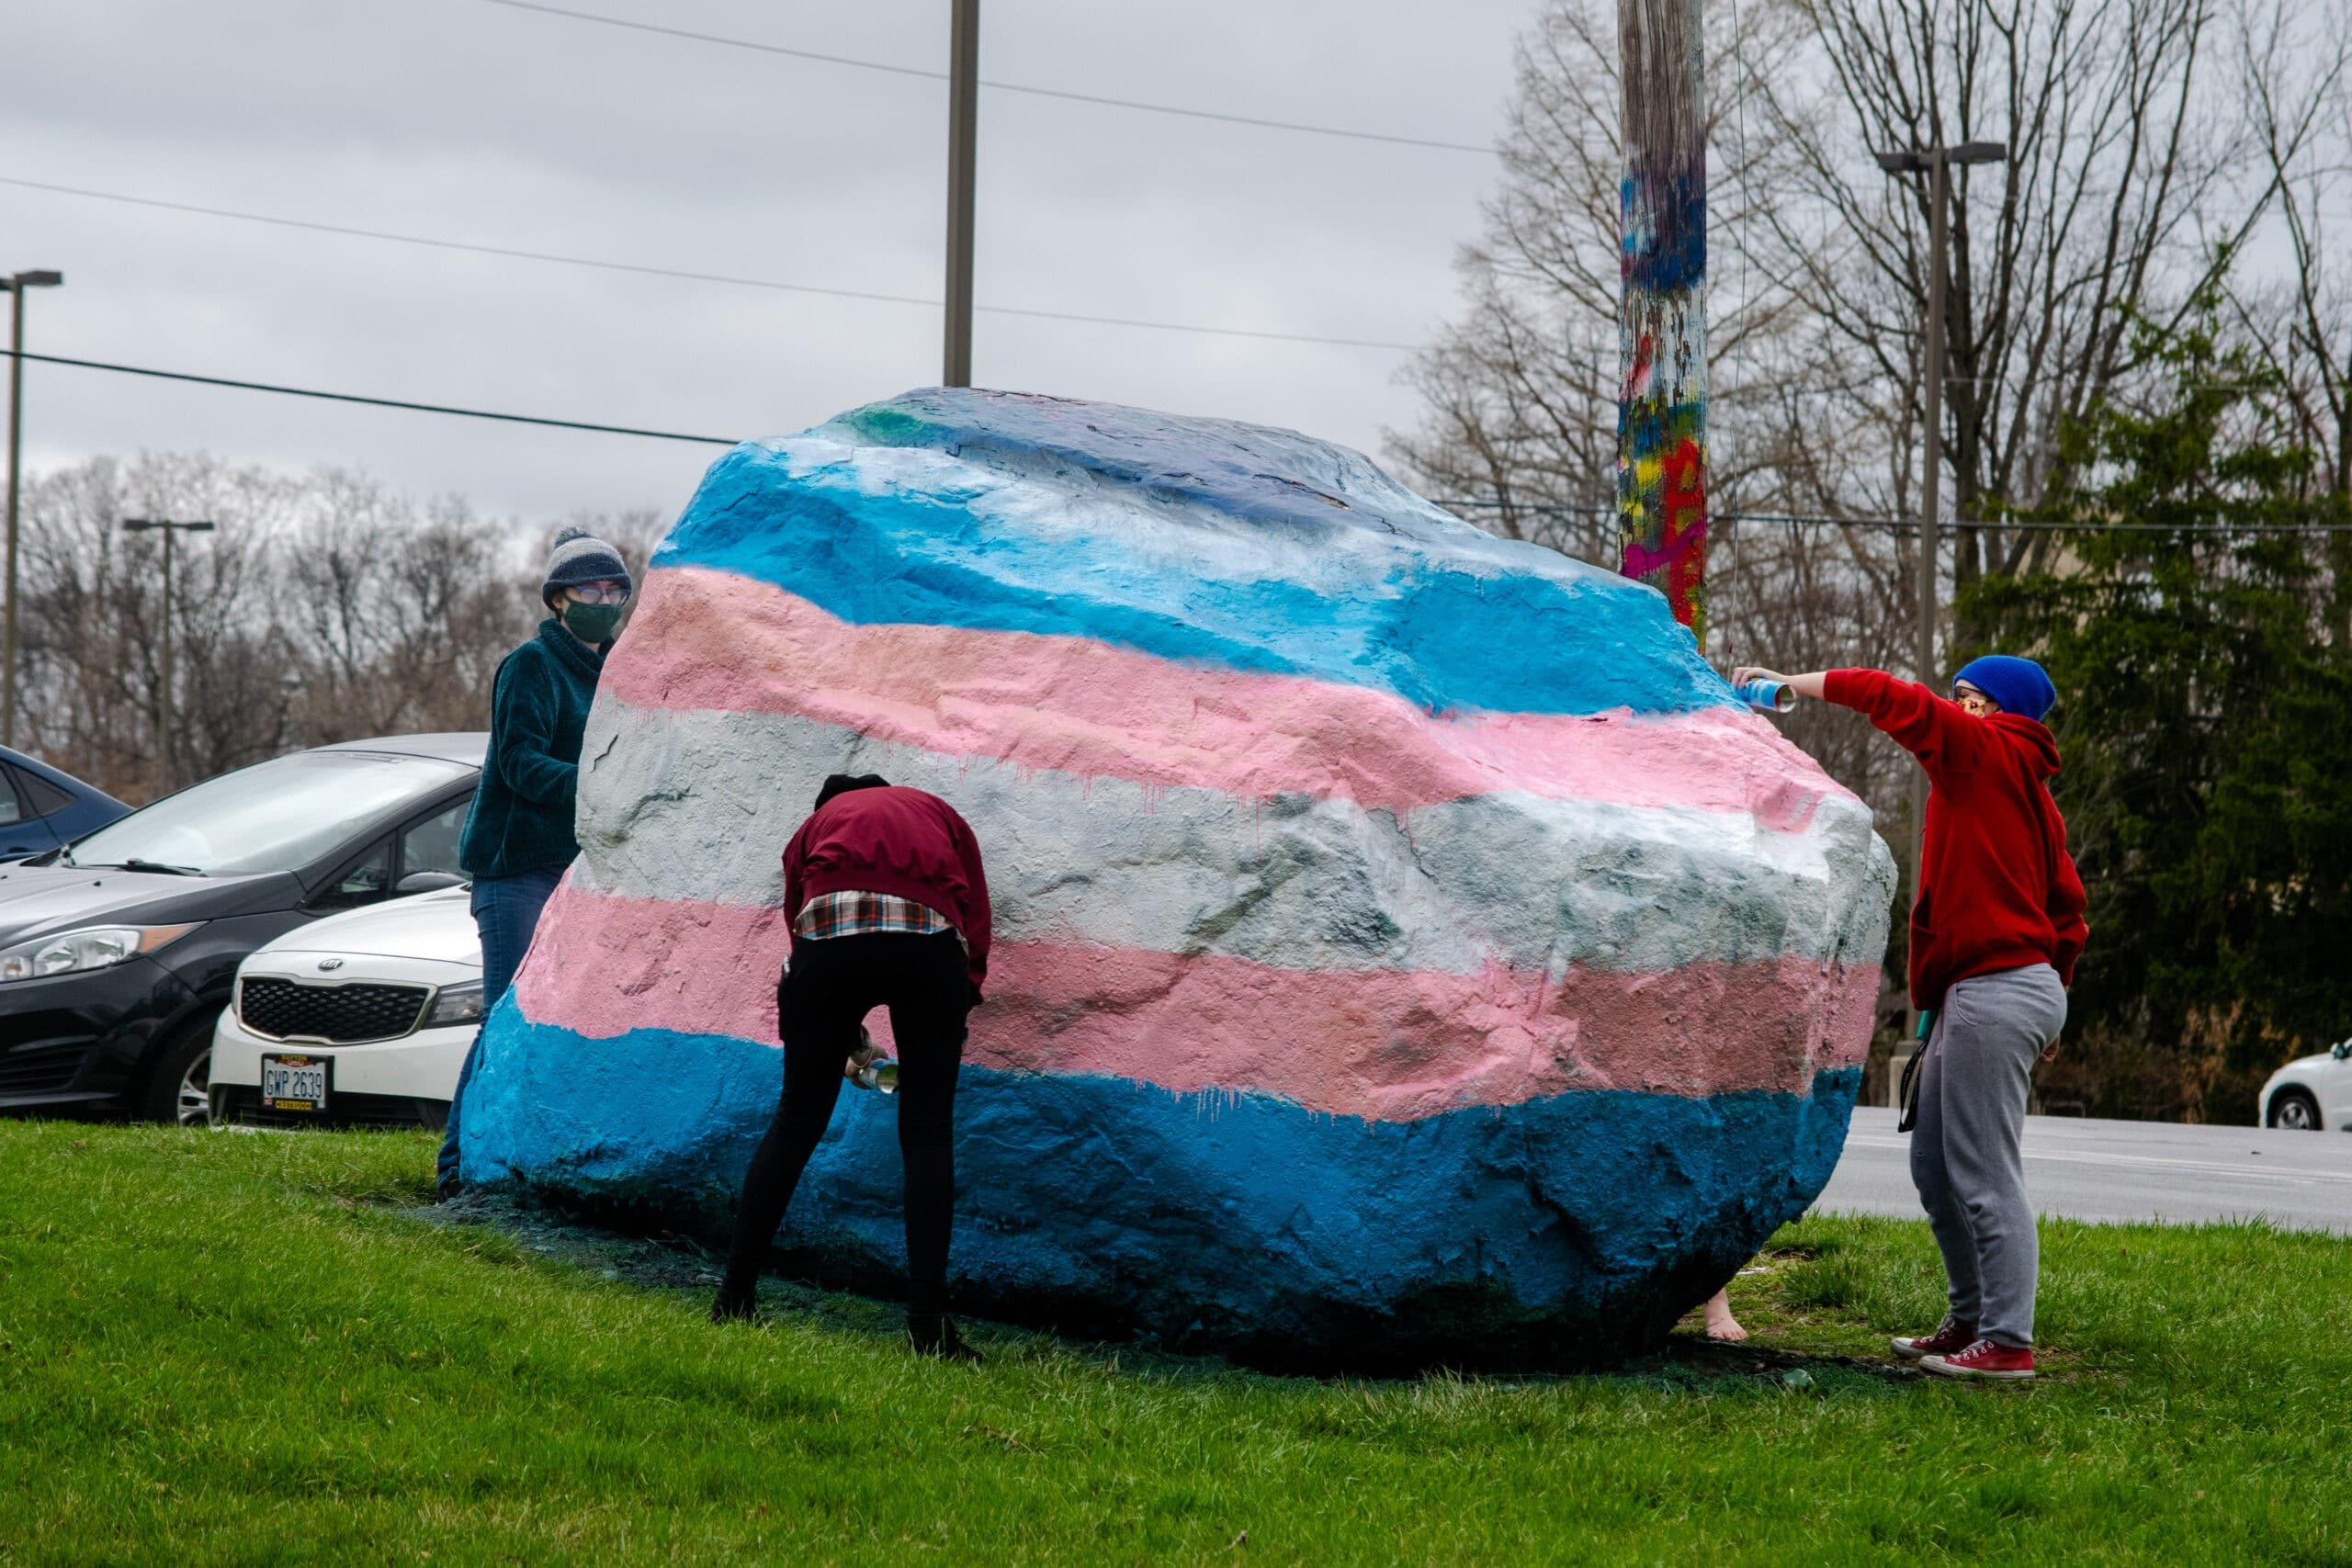 The transgender flag is painted on the Wright State Rock for International Transgender Day of Visibility.